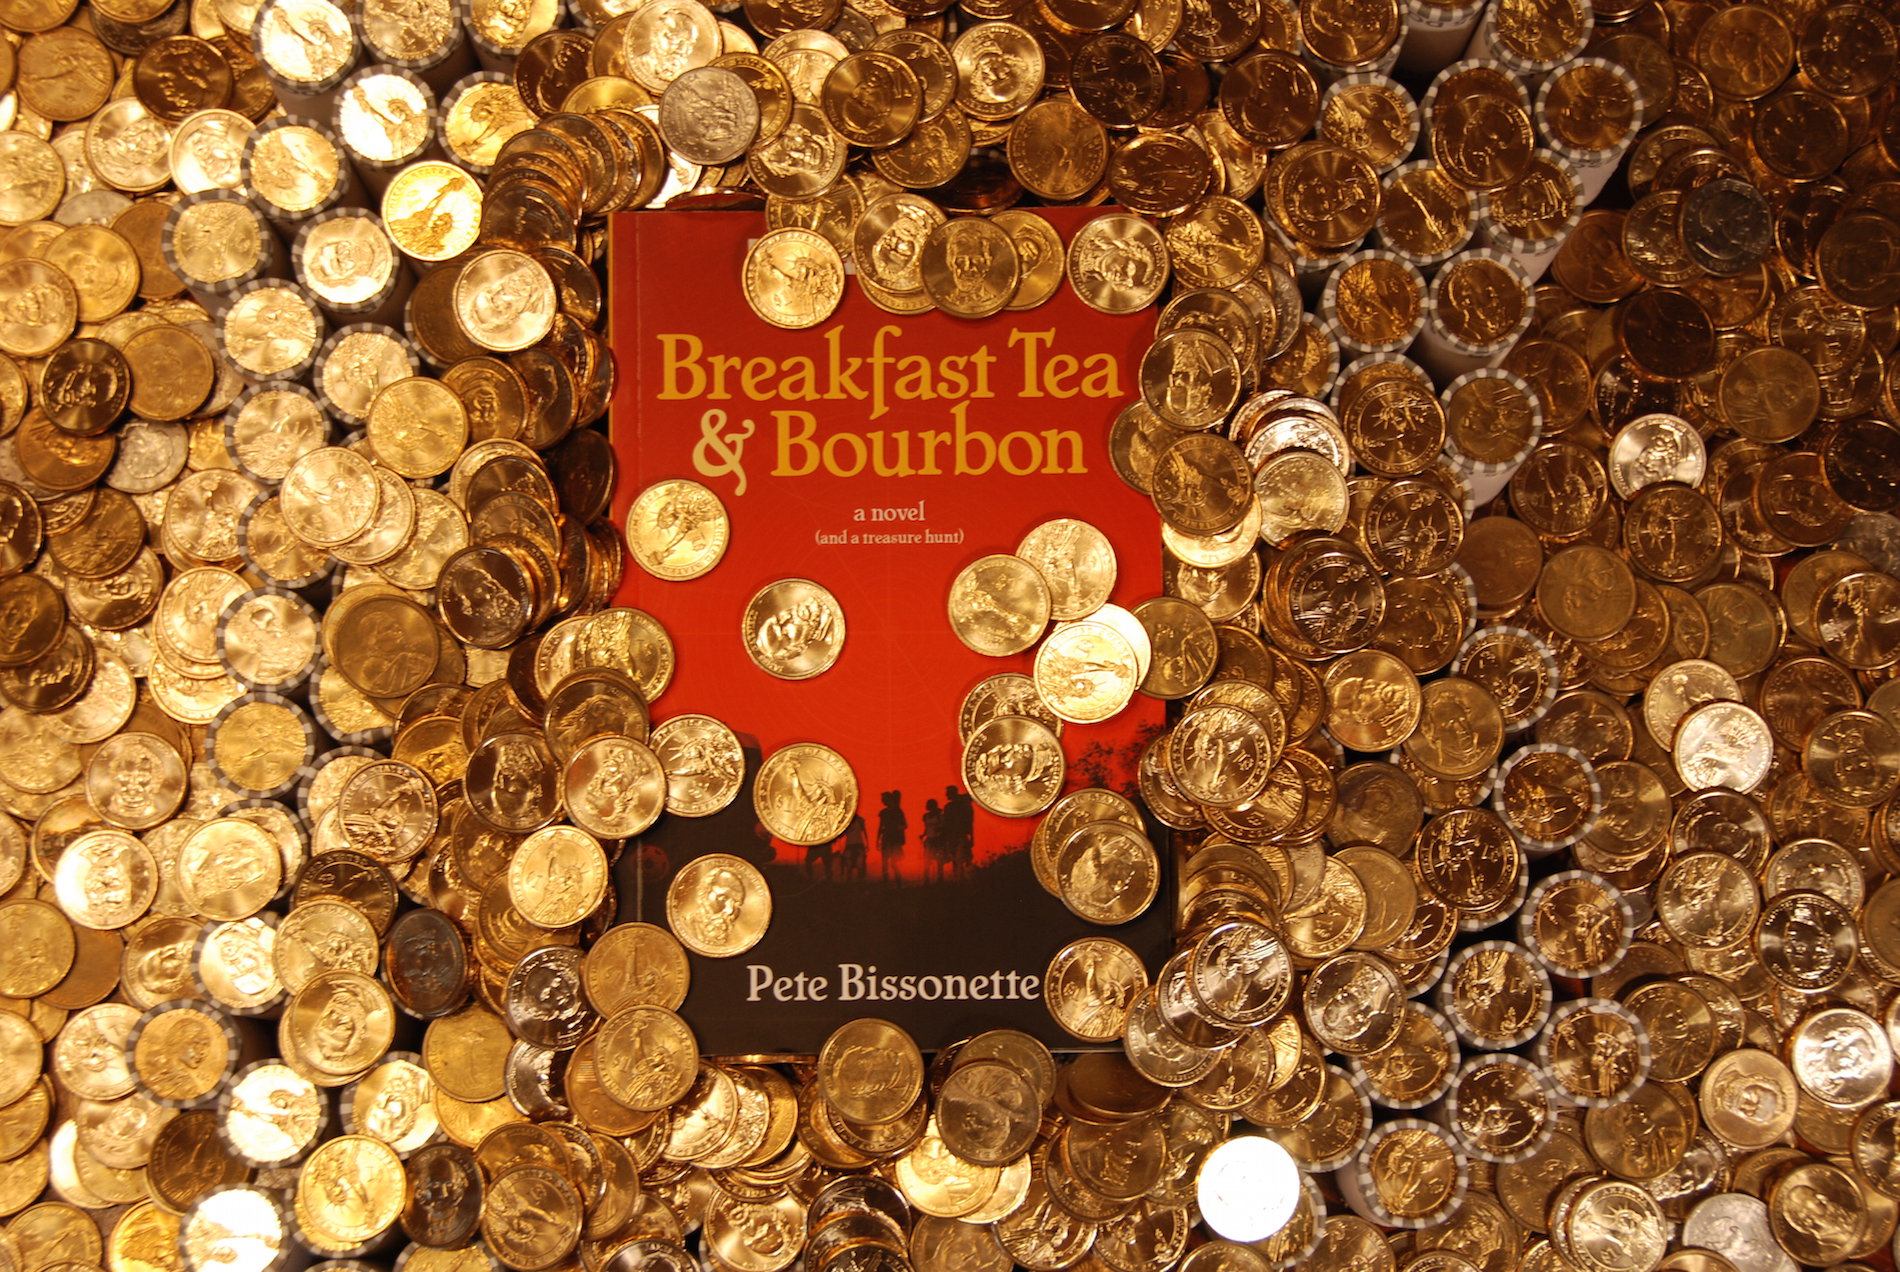 Breakfast Tea and Bourbon novel and treasure hunt by Pete Bissonette released Feb 9 2017